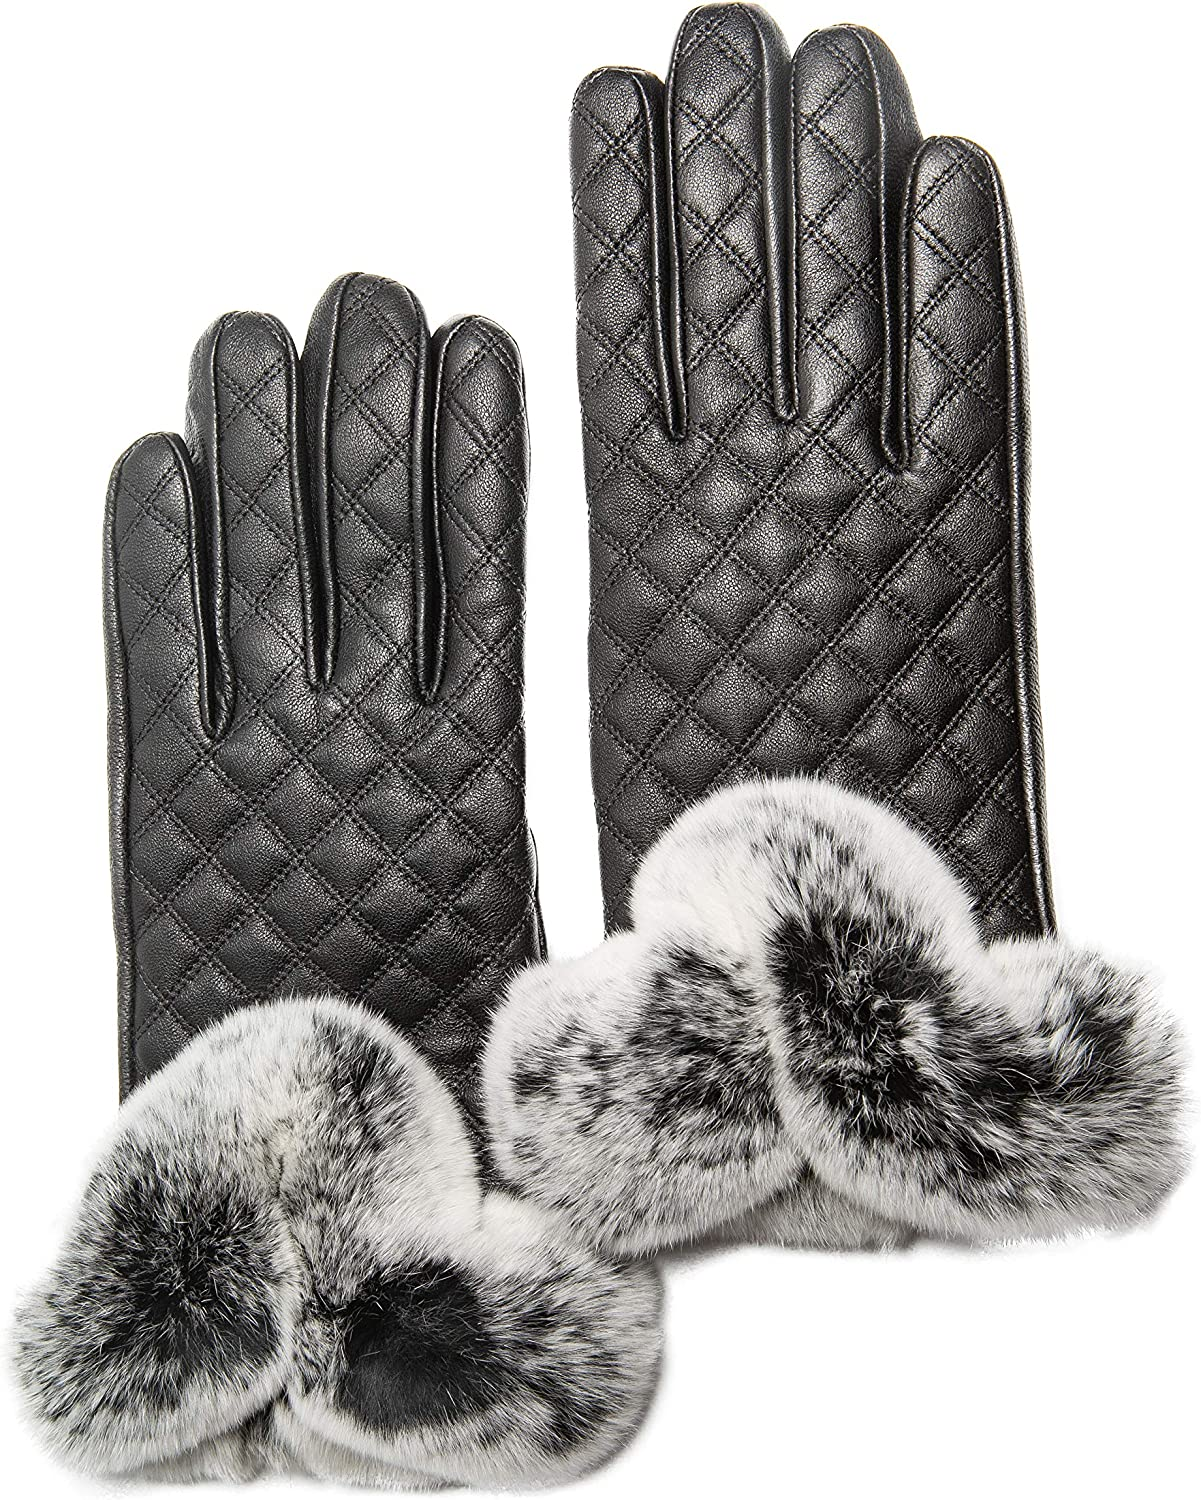 Women's Cashmere Lined Sheepskin Leather Gloves, Touchscreen, Genuine Rex Rabbit Fur Cuff, Gift Box by CANDOR AND CLASS